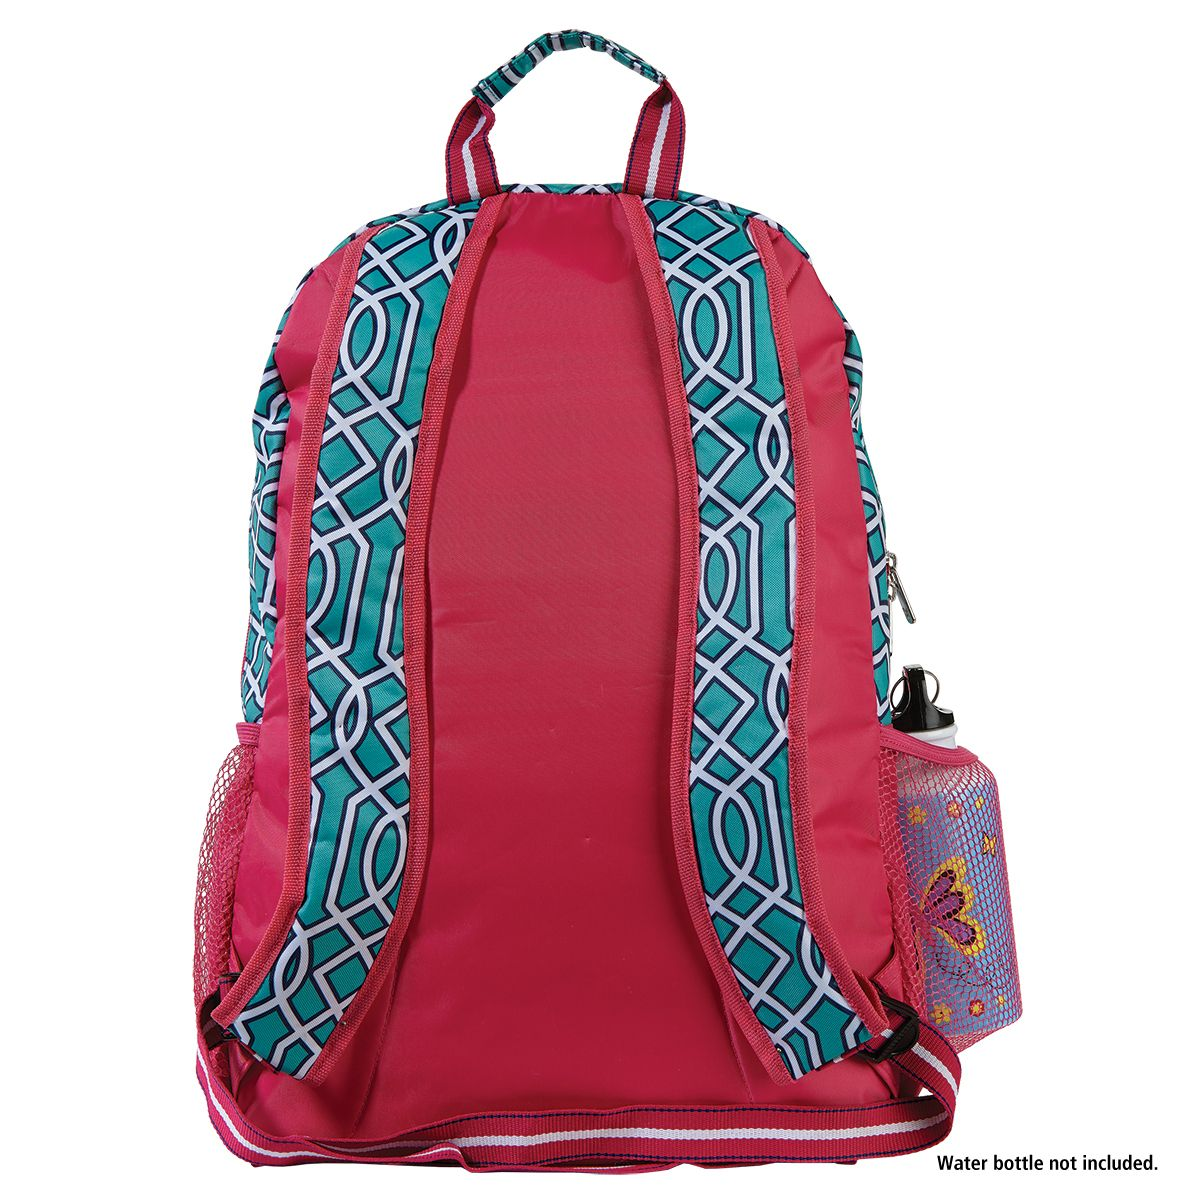 Turquoise Lattice Personalized Backpack